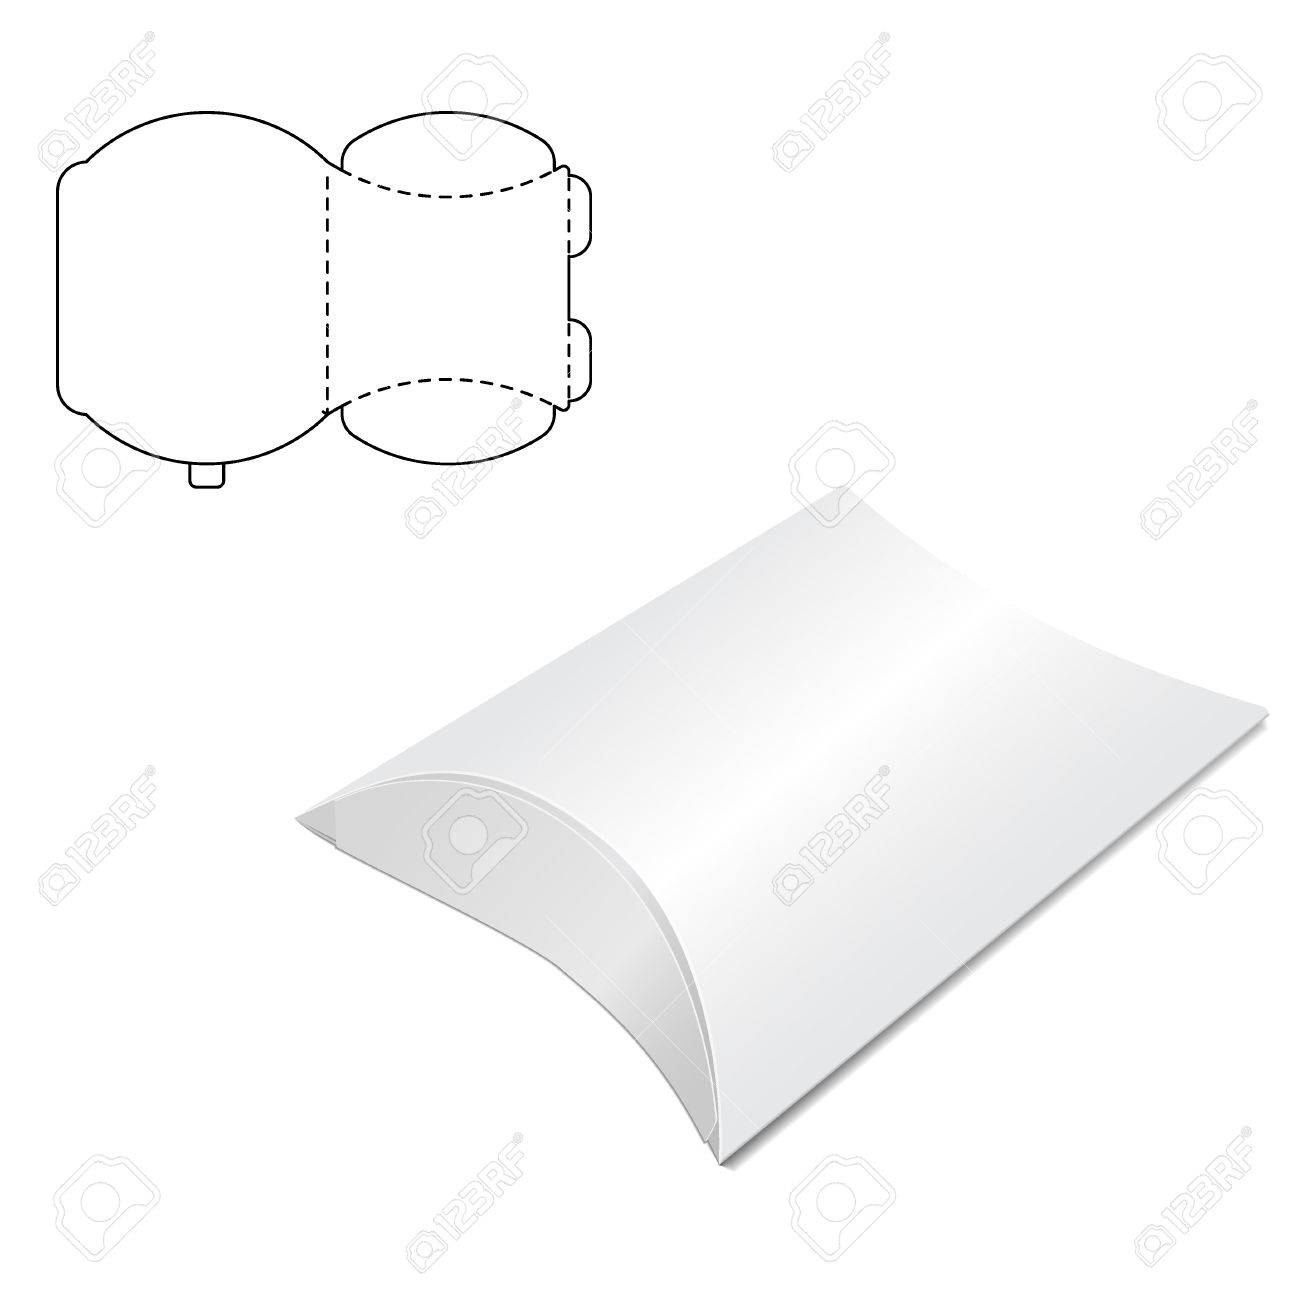 Vector Illustration of Pillow craft Box for Design, Website, Background, Banner. Folding package Template. Fold pack with die line for your brand on it - 51583291